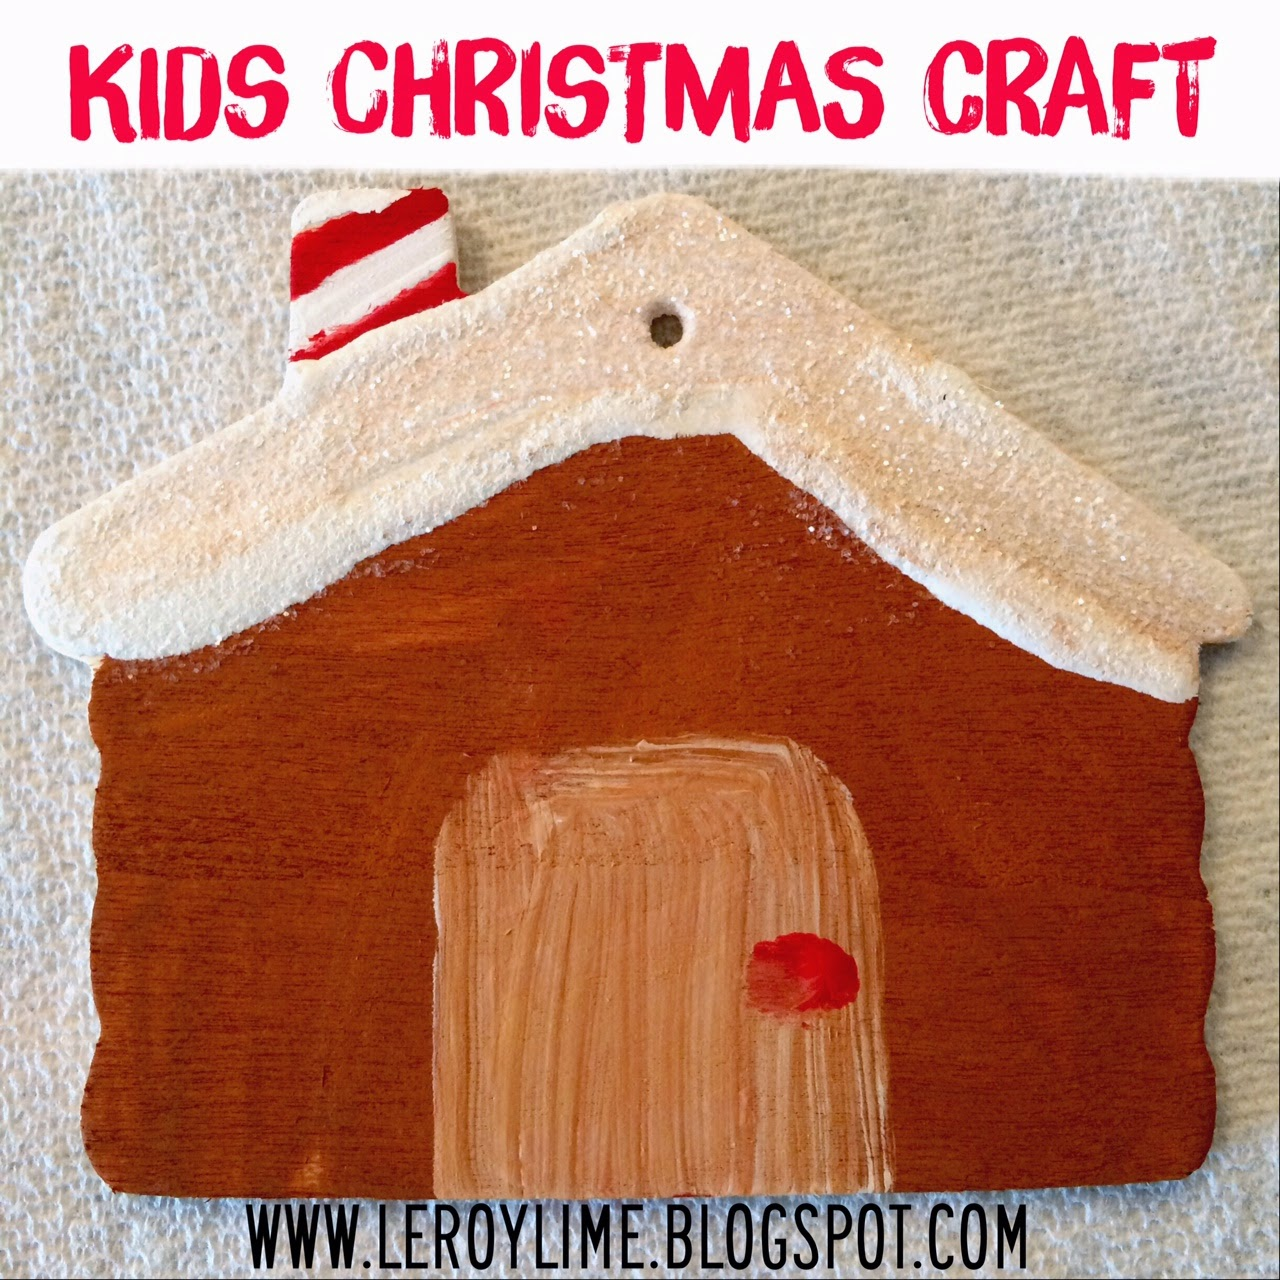 Kids Christmas Ornament Craft - LeroyLime